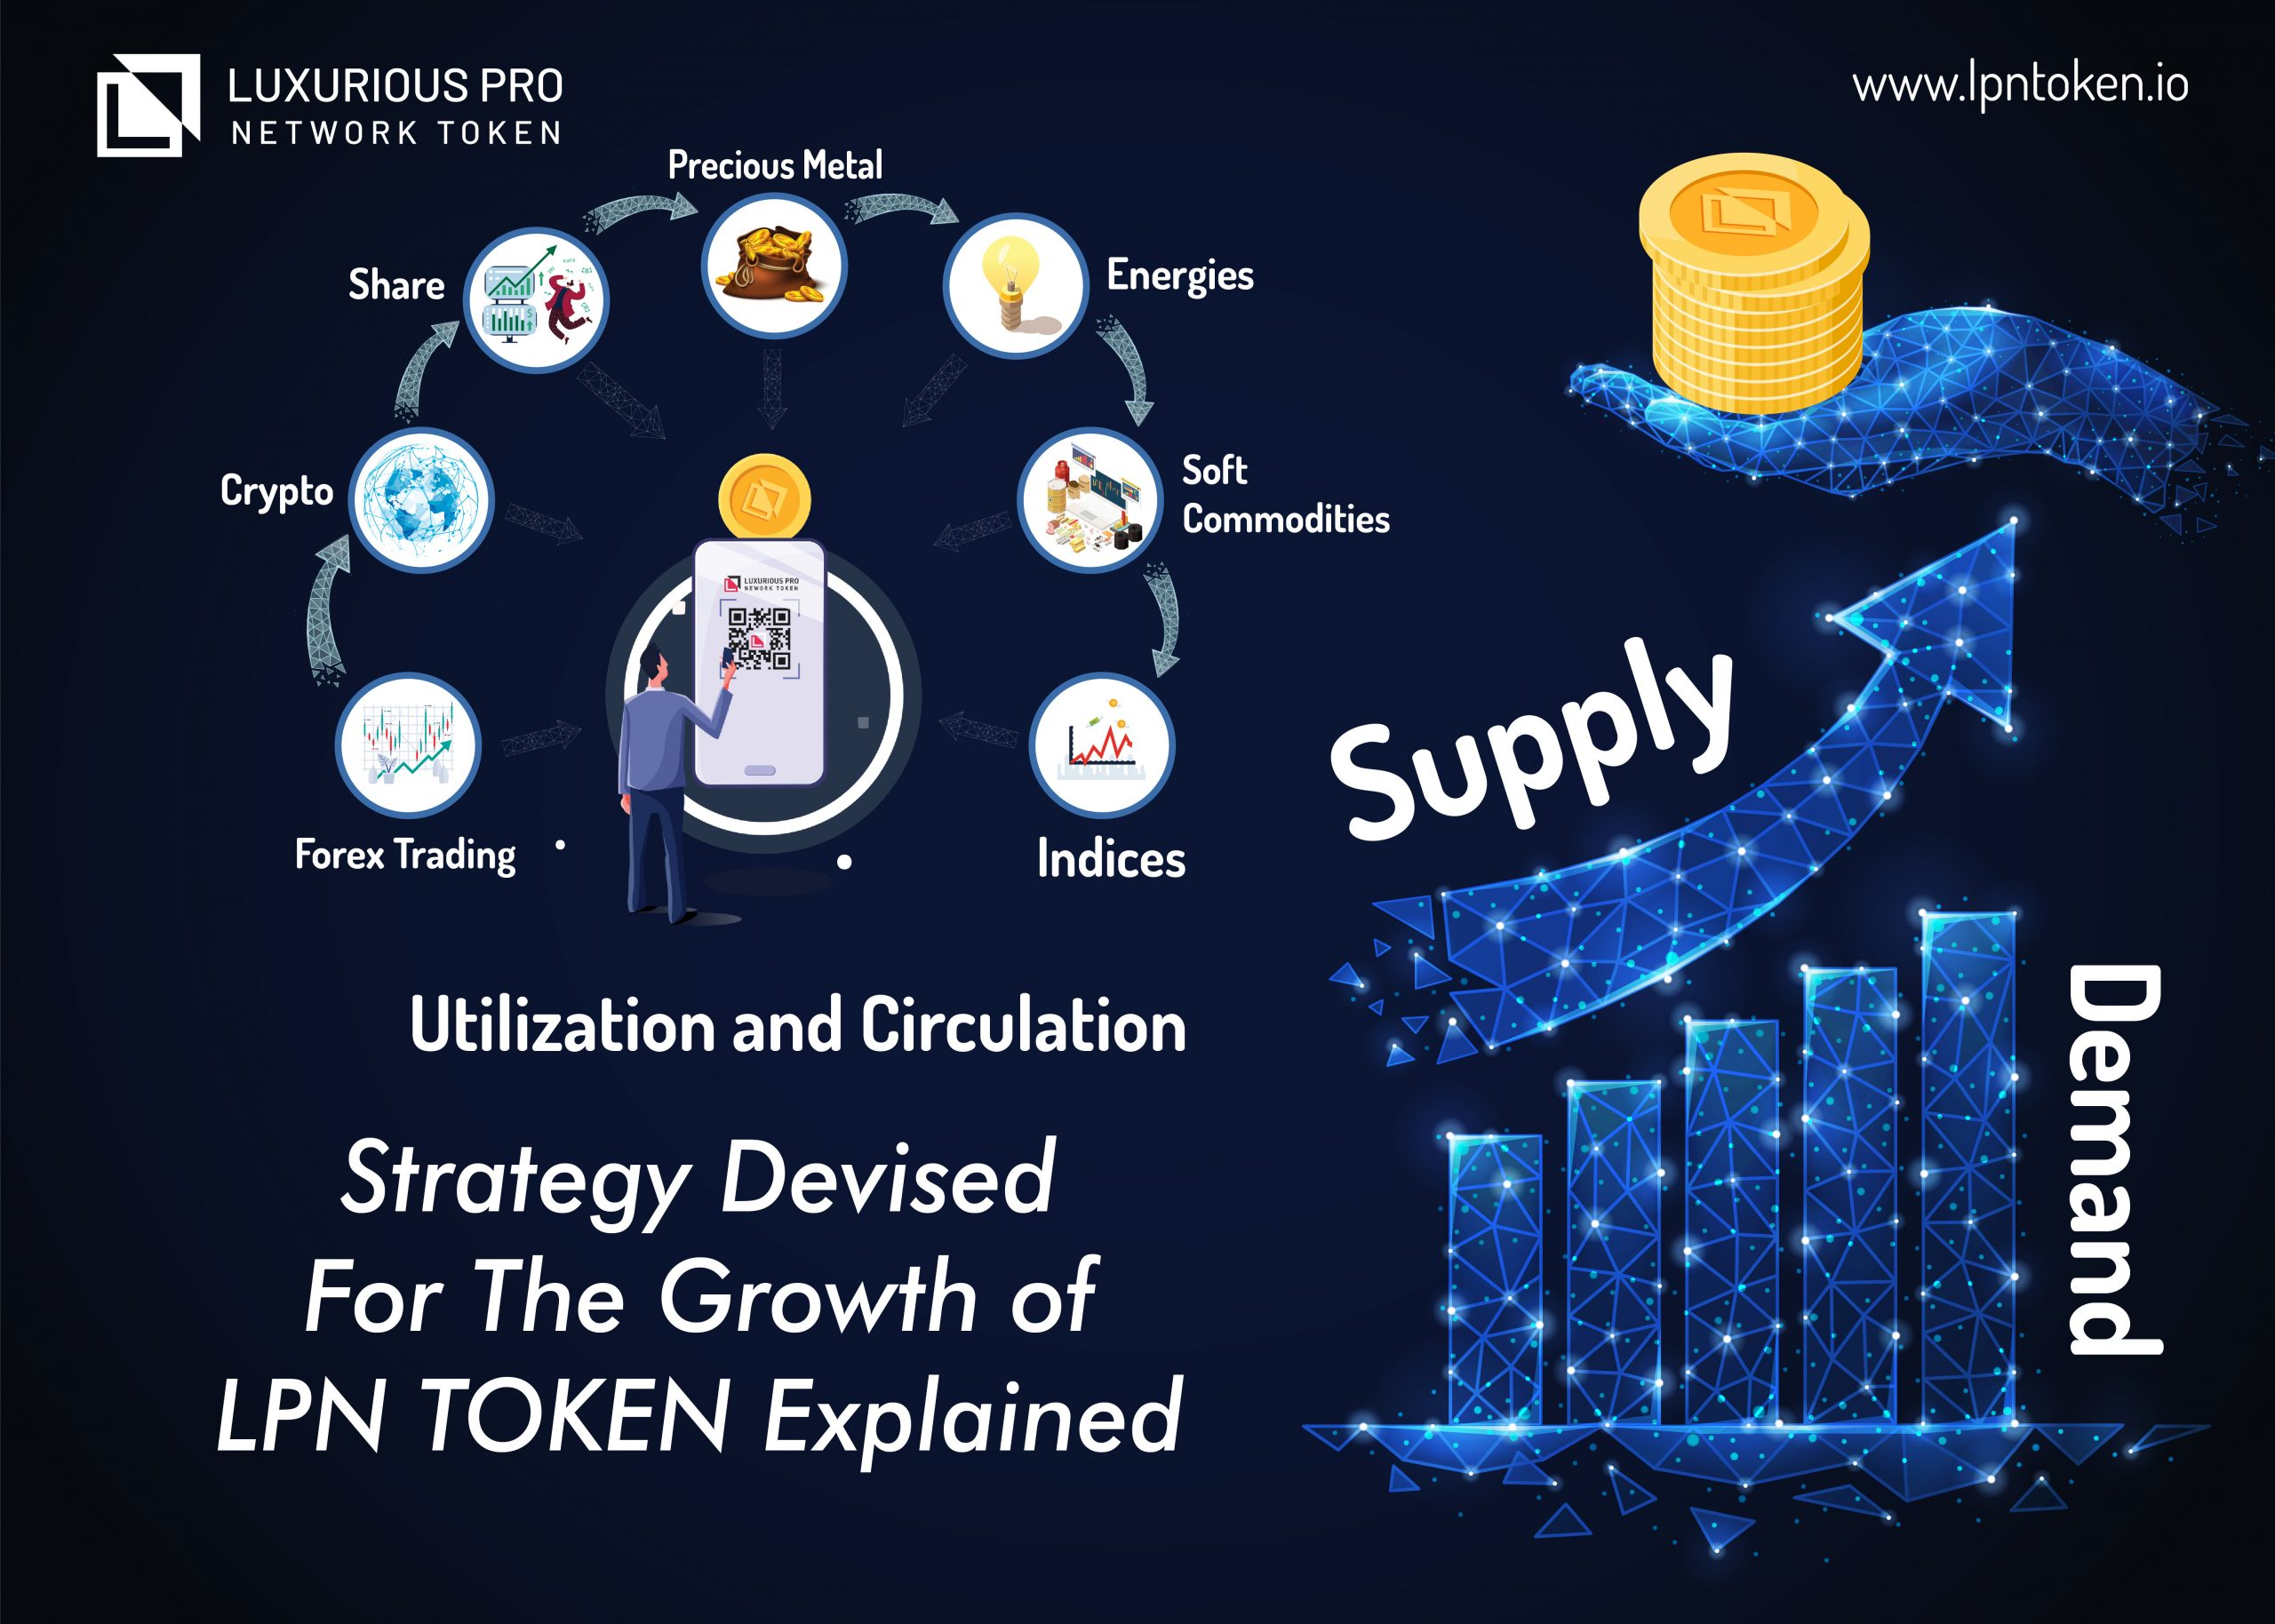 Strategy Devised For The Growth of LPN TOKEN Explained